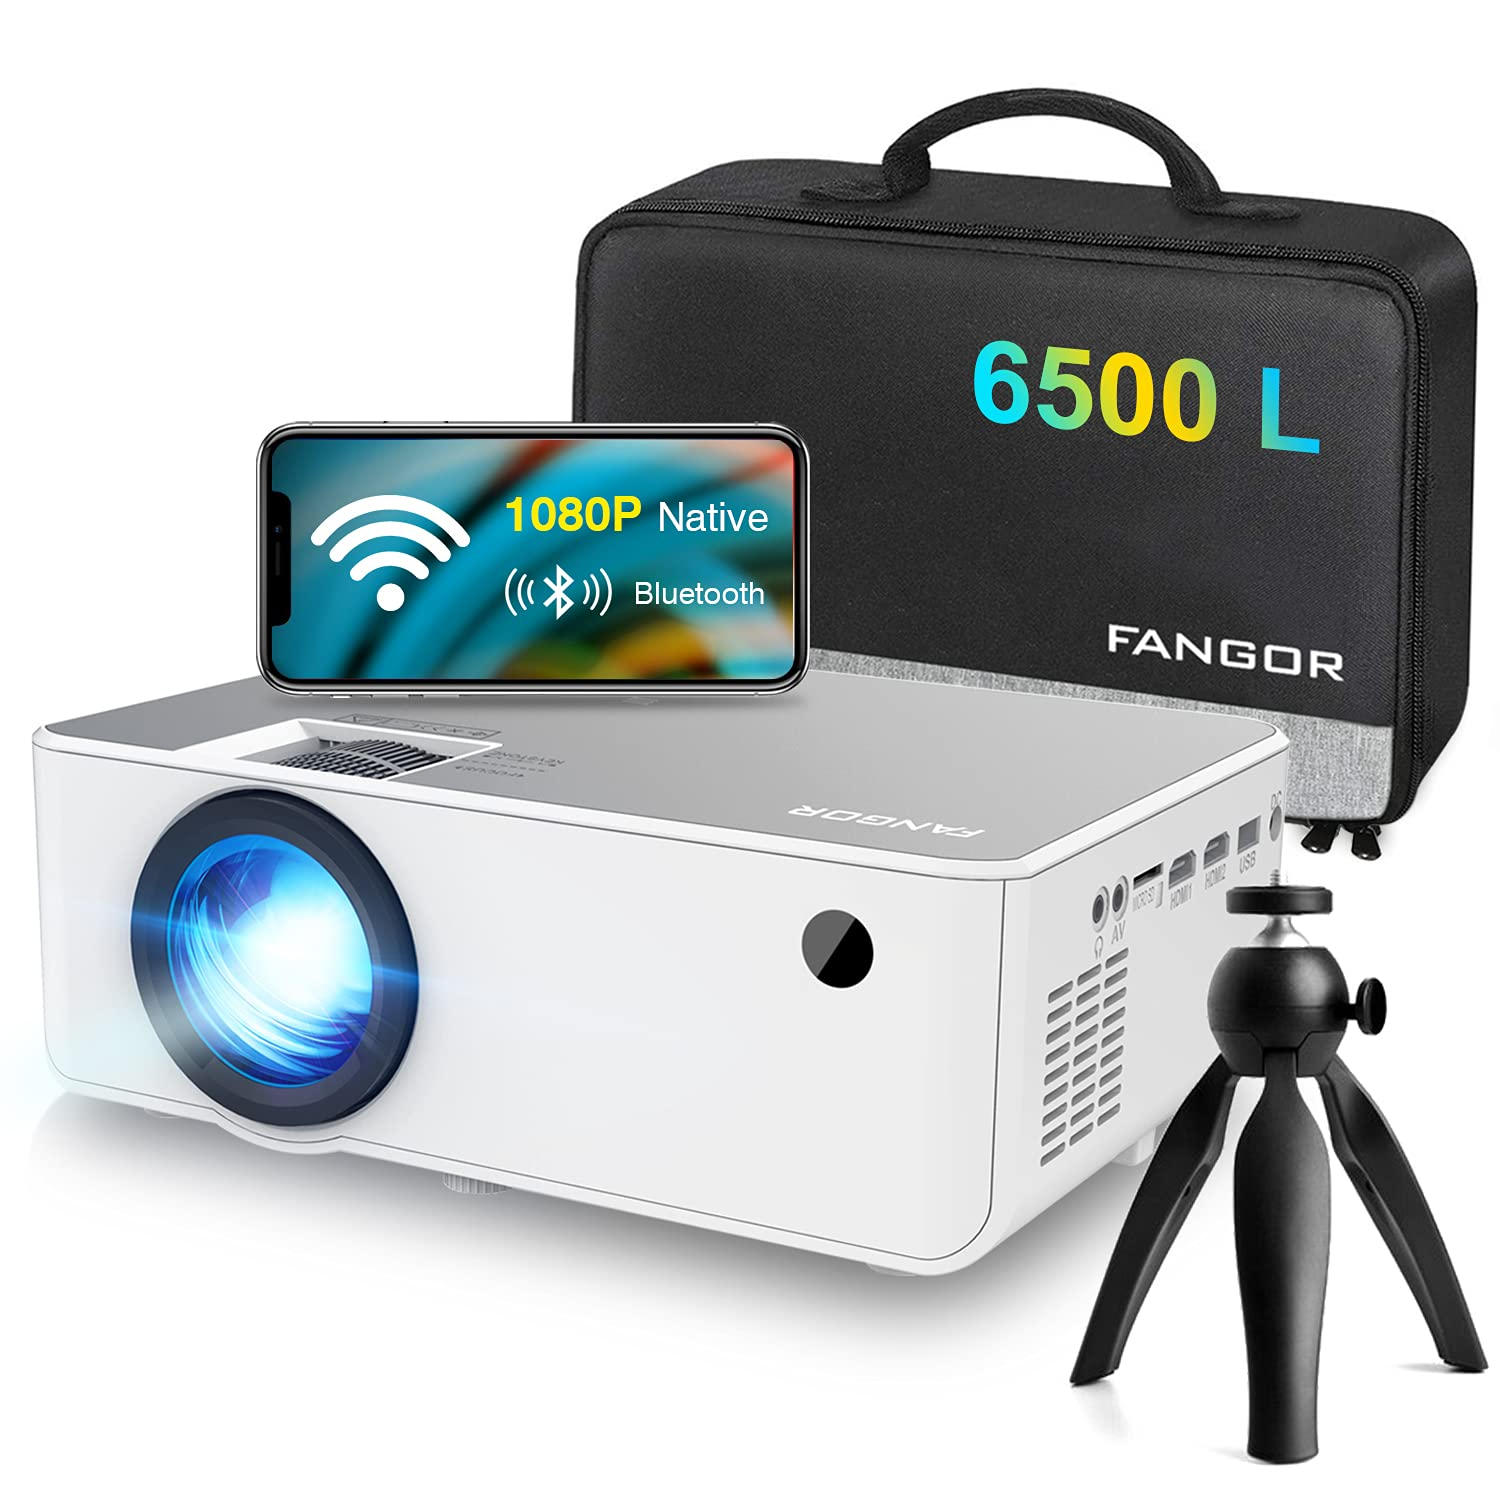 """1080P HD Projector, WiFi Projector Bluetooth Projector, FANGOR 6500L 230"""" Portable Movie Projector, Home Theater Video Projector Compatible with TV Stick, HDMI, VGA, USB, Laptop, iOS & Android"""